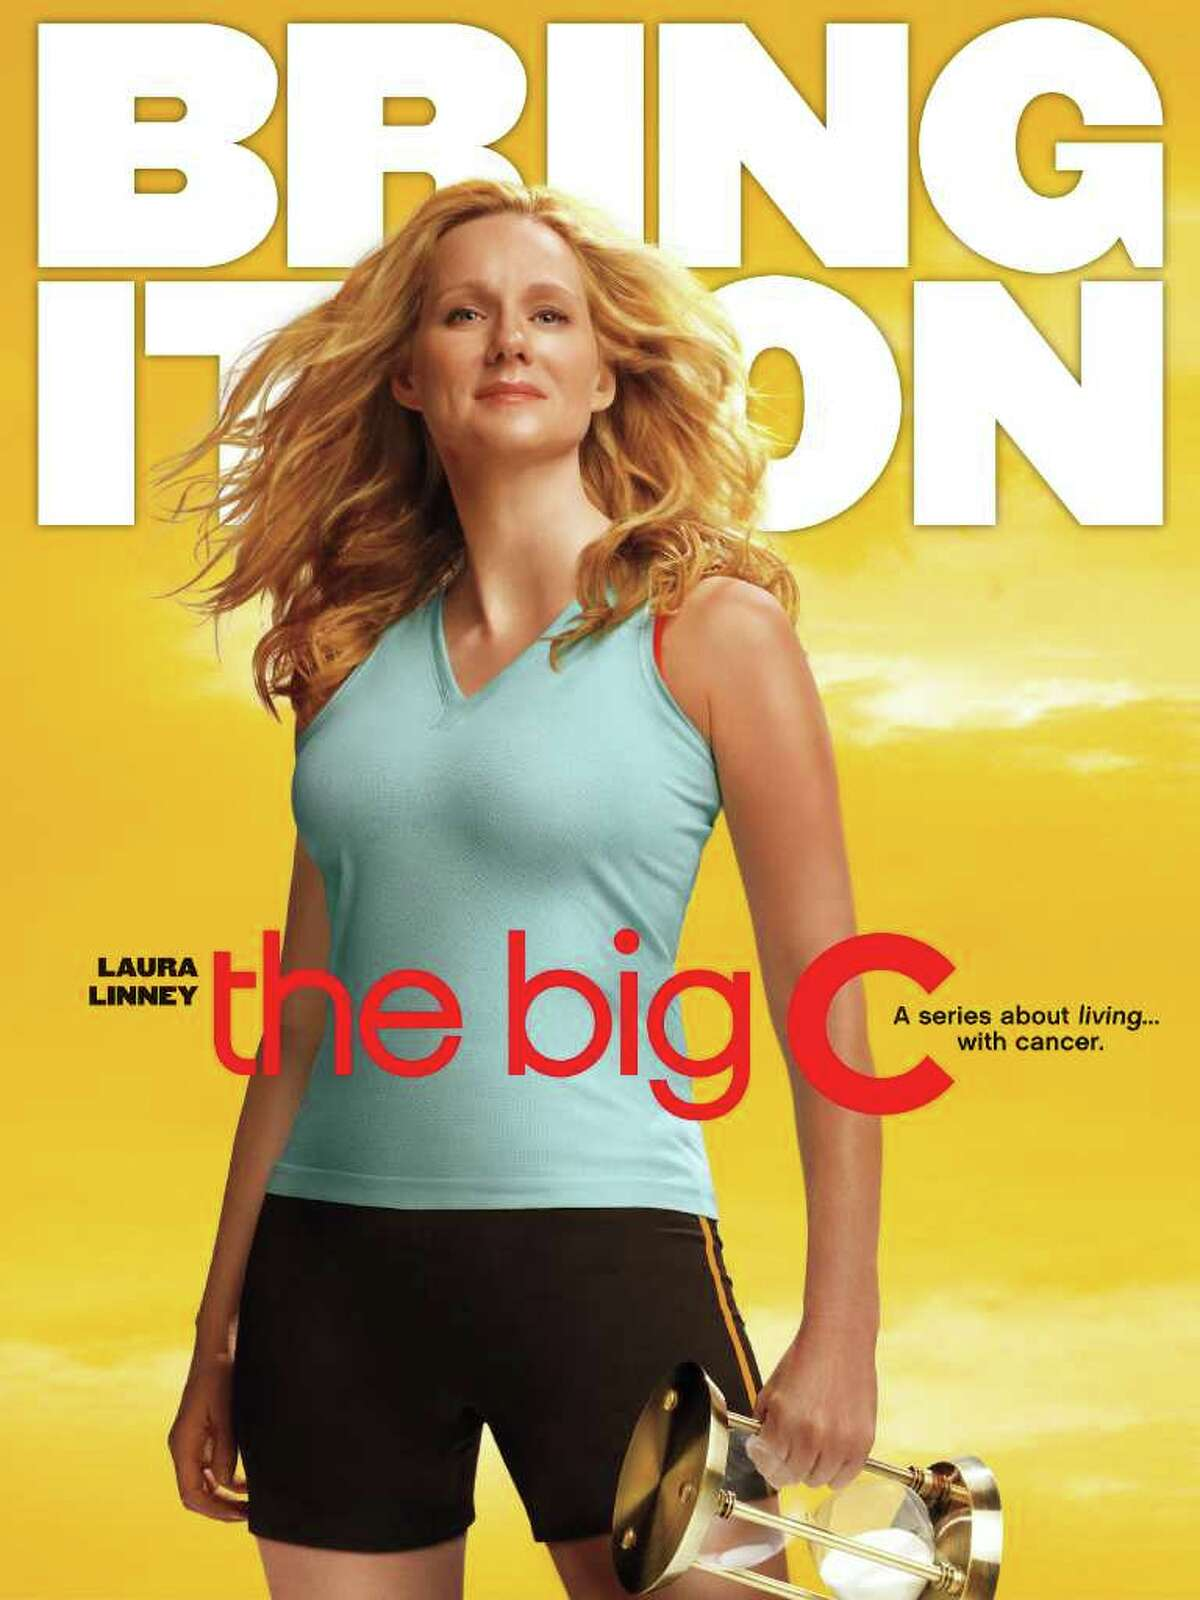 Laura Linney as Cathy in The Big C.